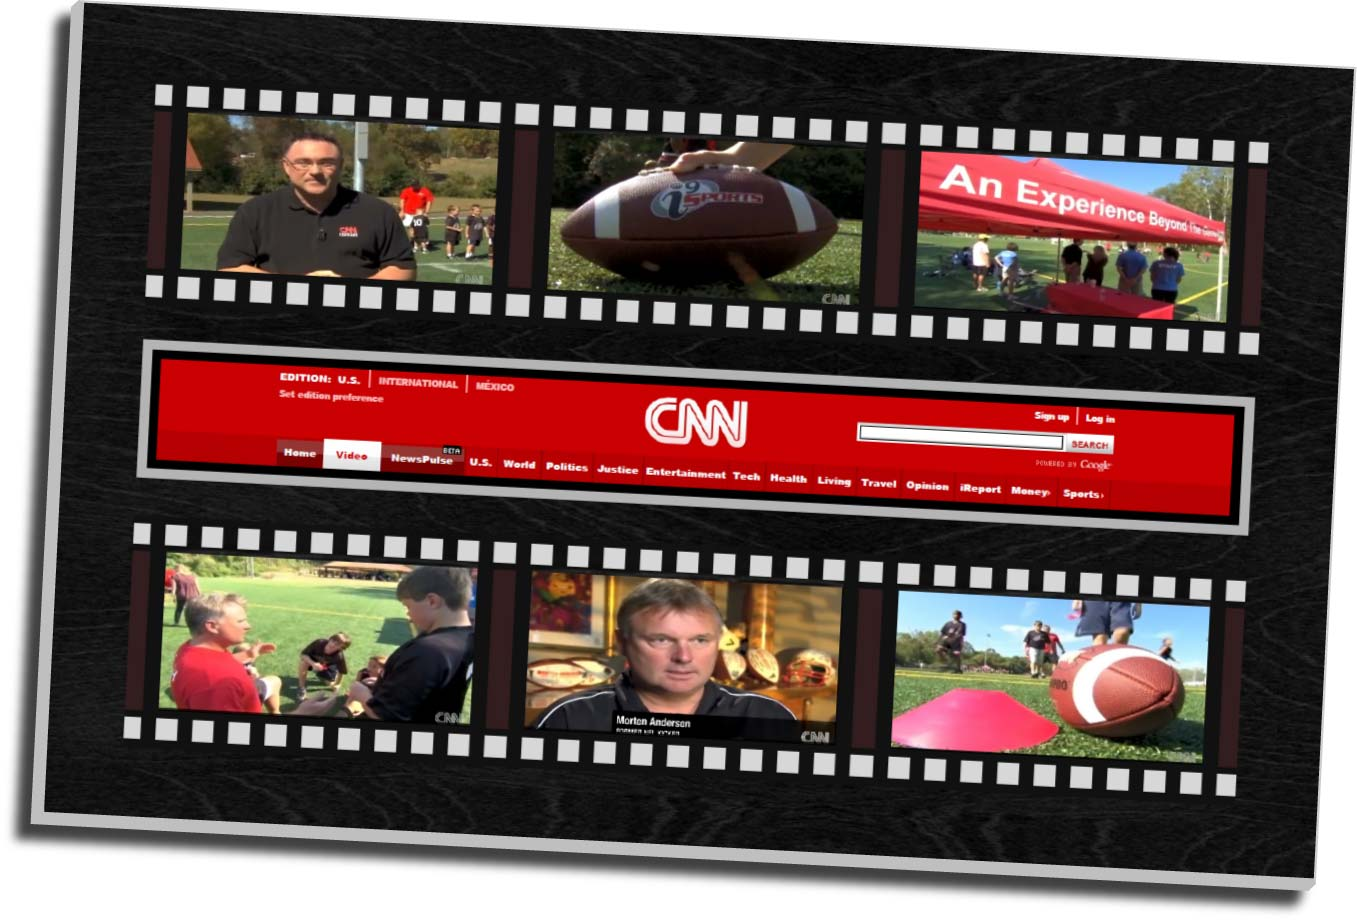 CNN videos, i9sports,digital photos,screen capture